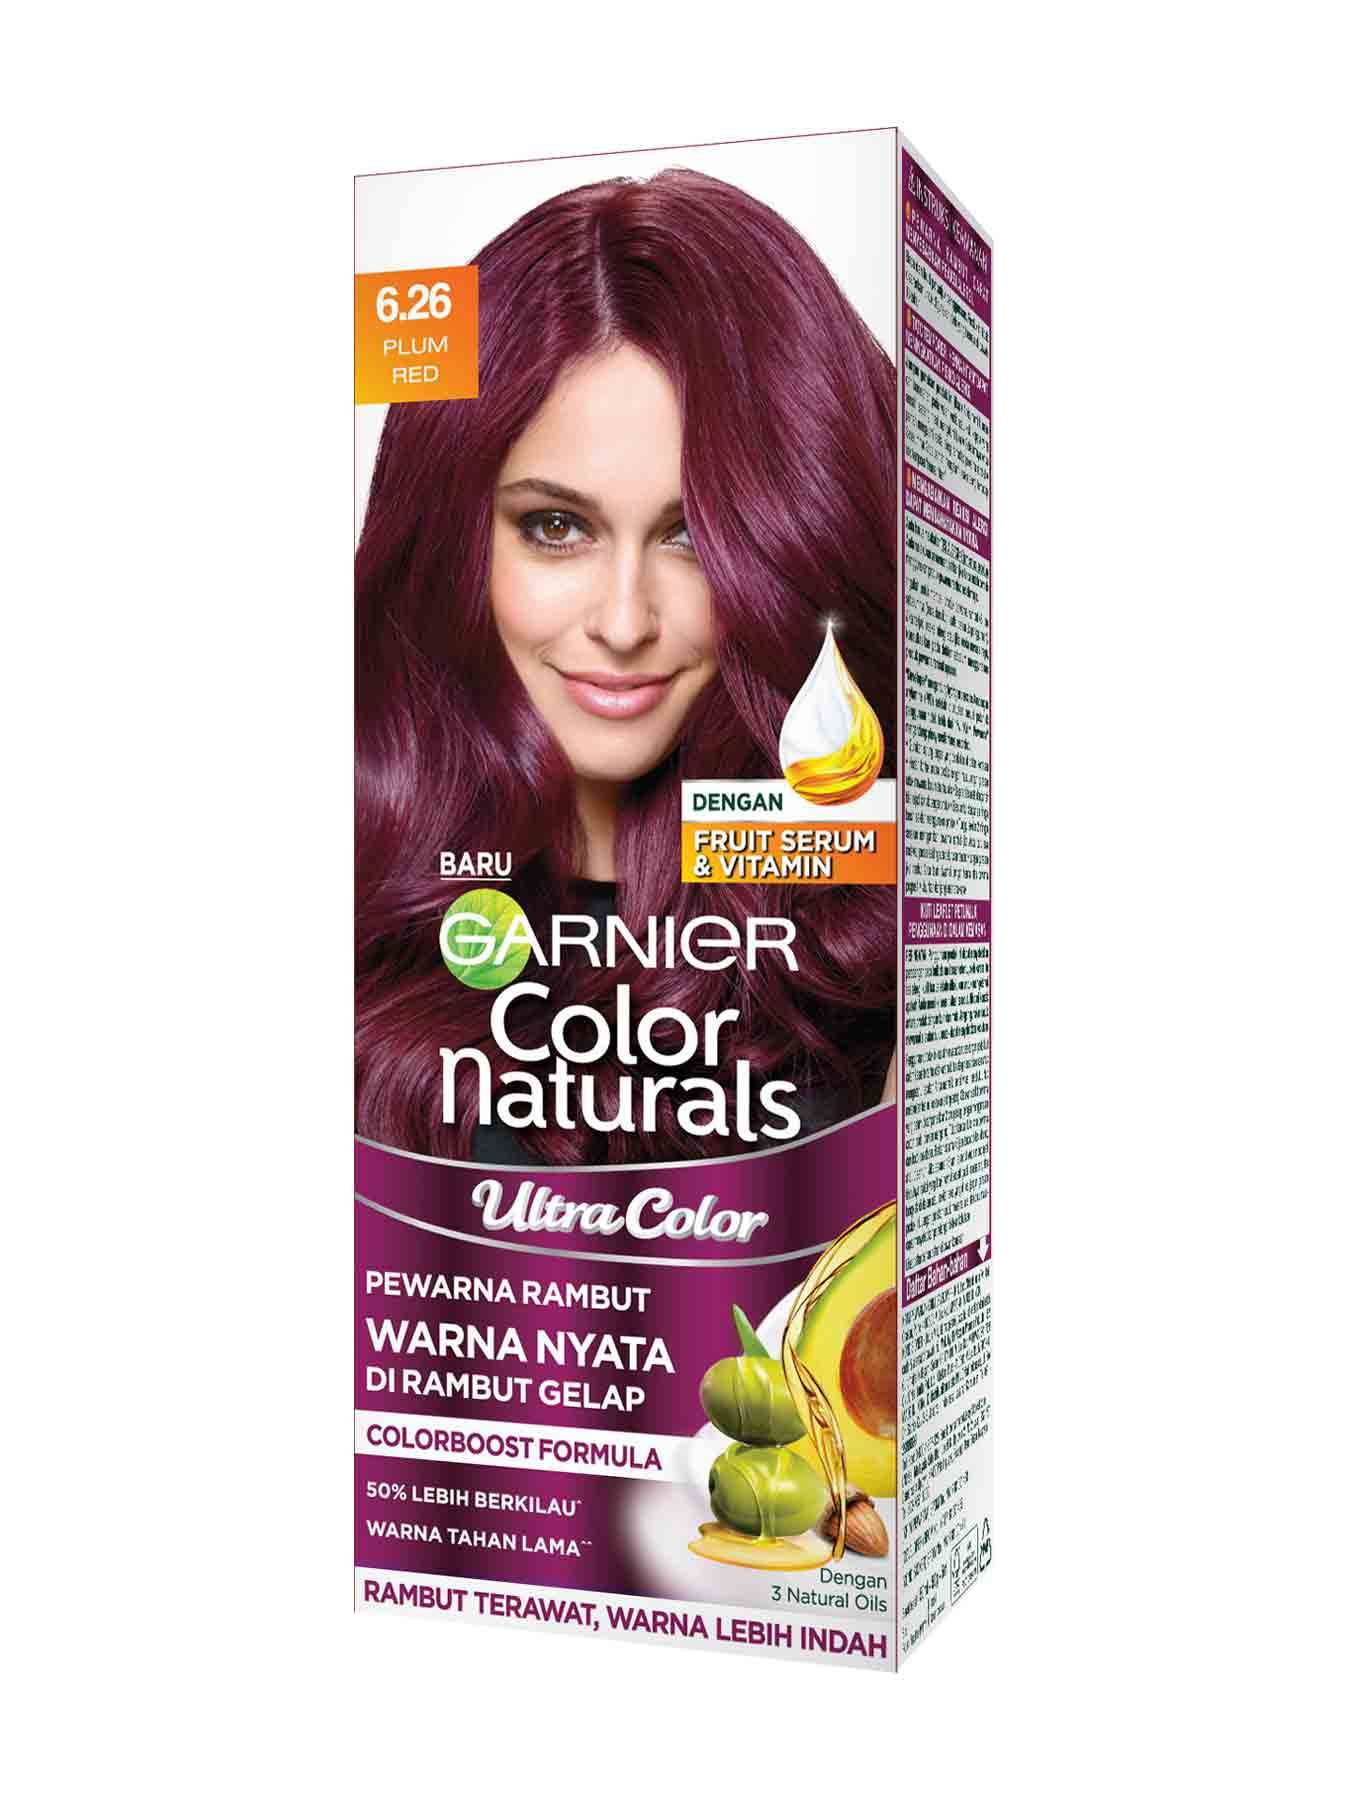 color naturals ultra color 626 plum red 8901526539369_t1